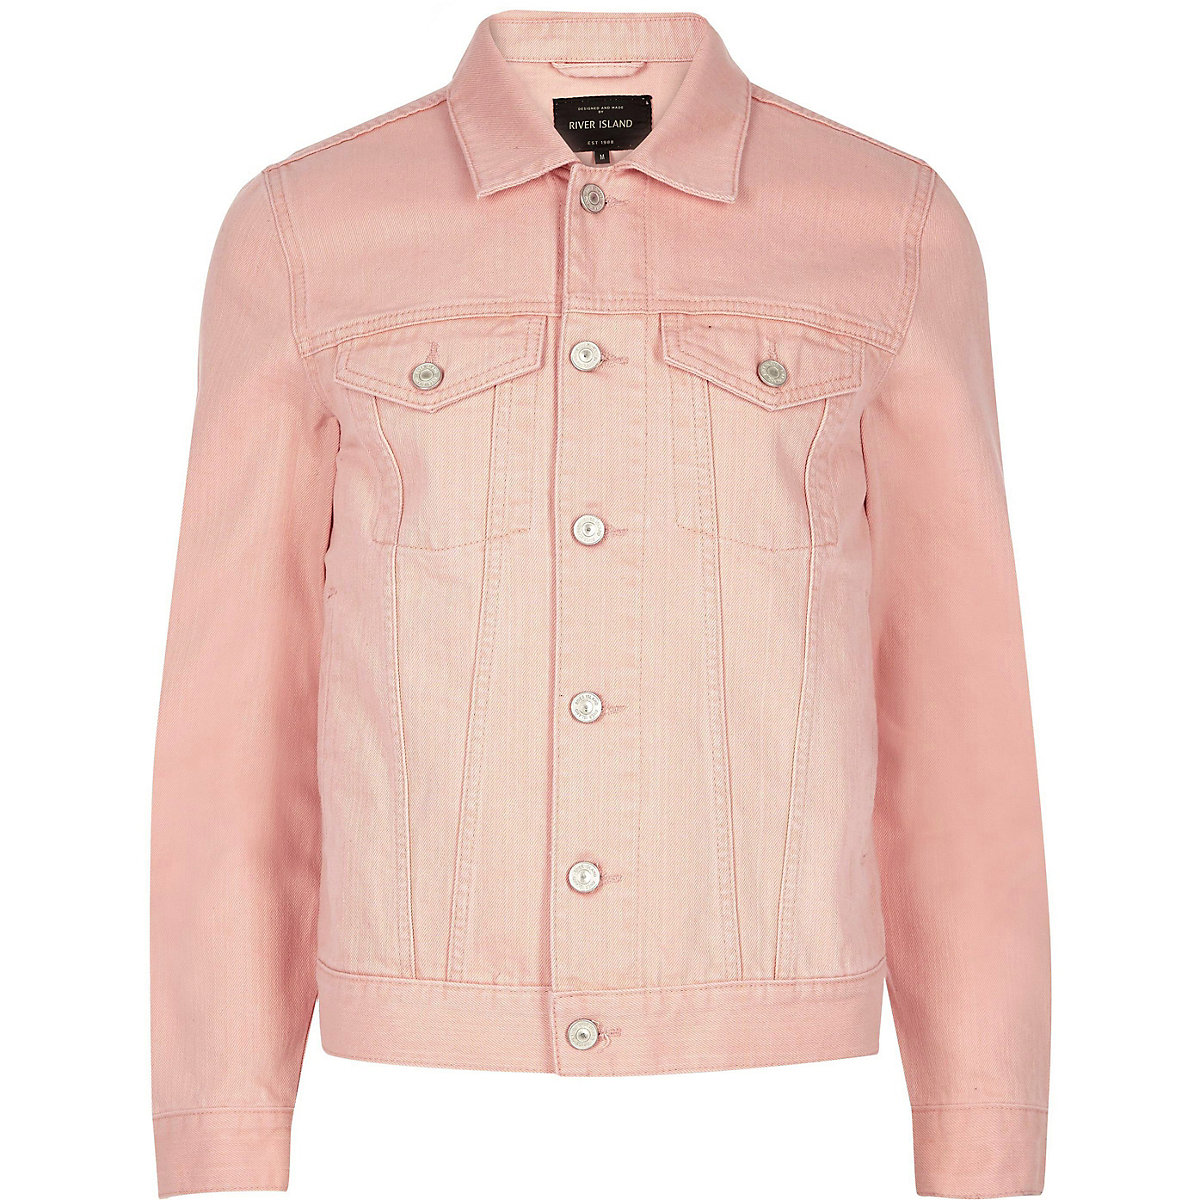 Veste en jean Big & Tall rose